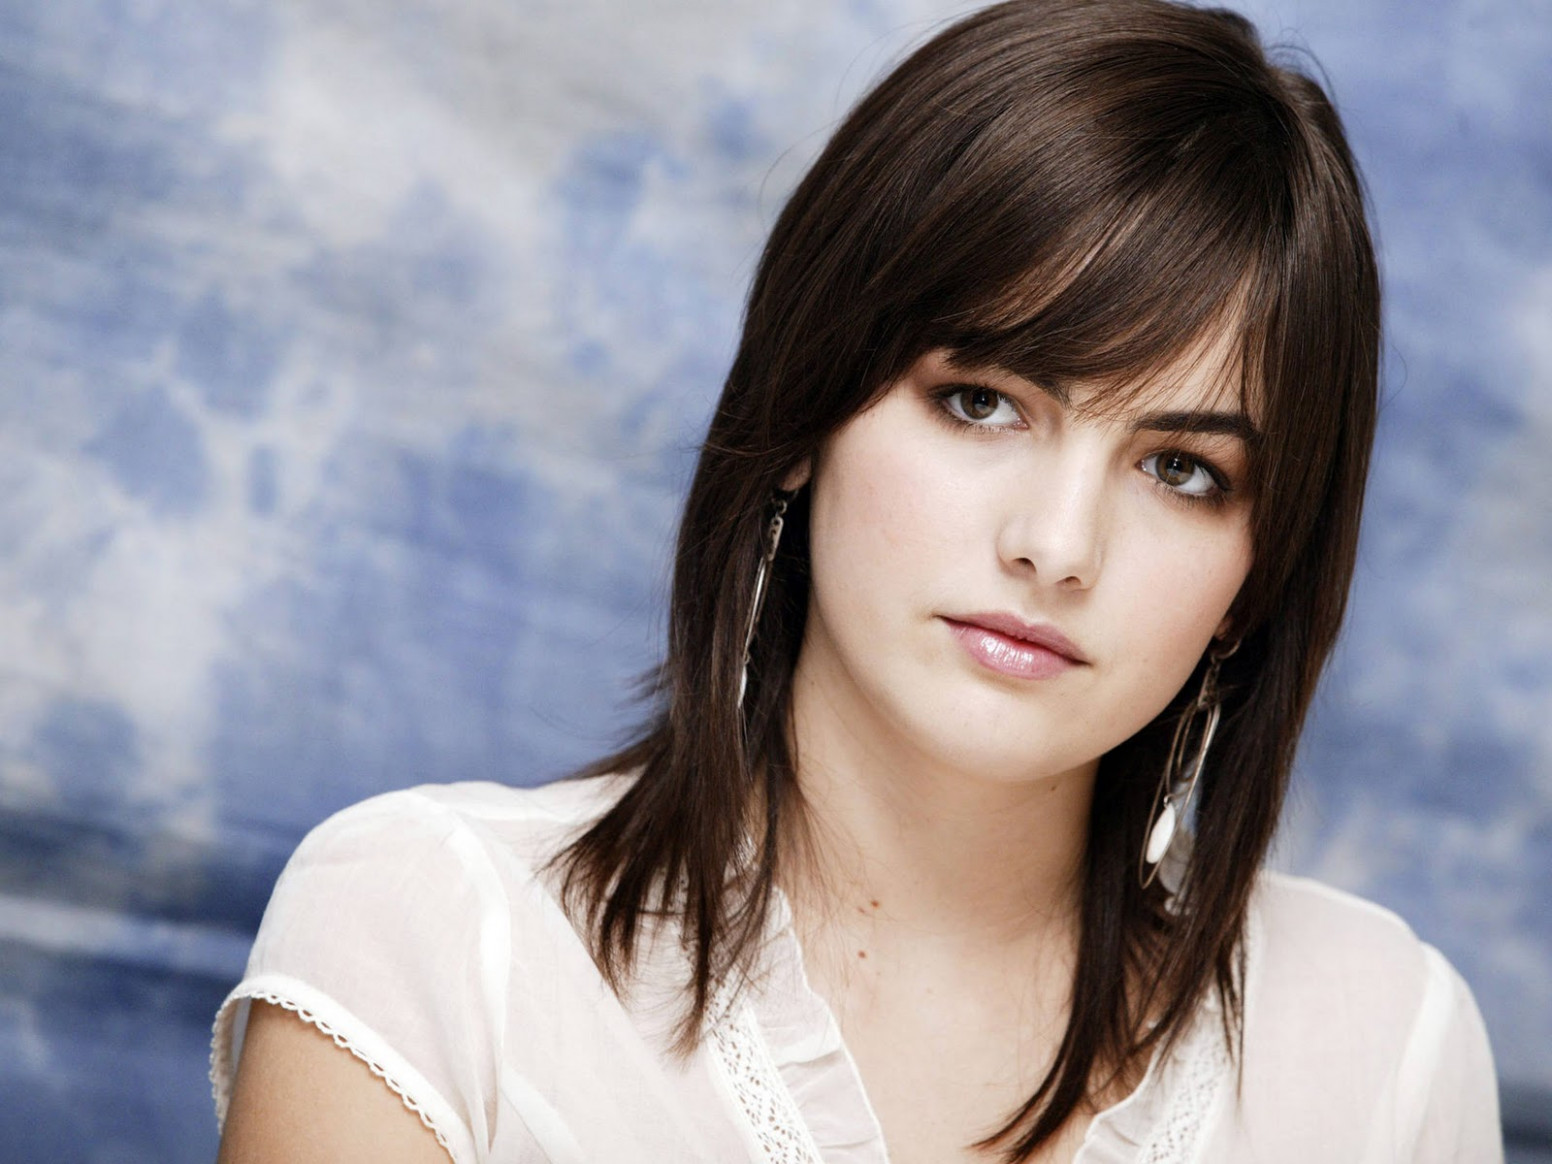 Glorious Wallpapers 2012: Hollywood actress wallpapers 2012